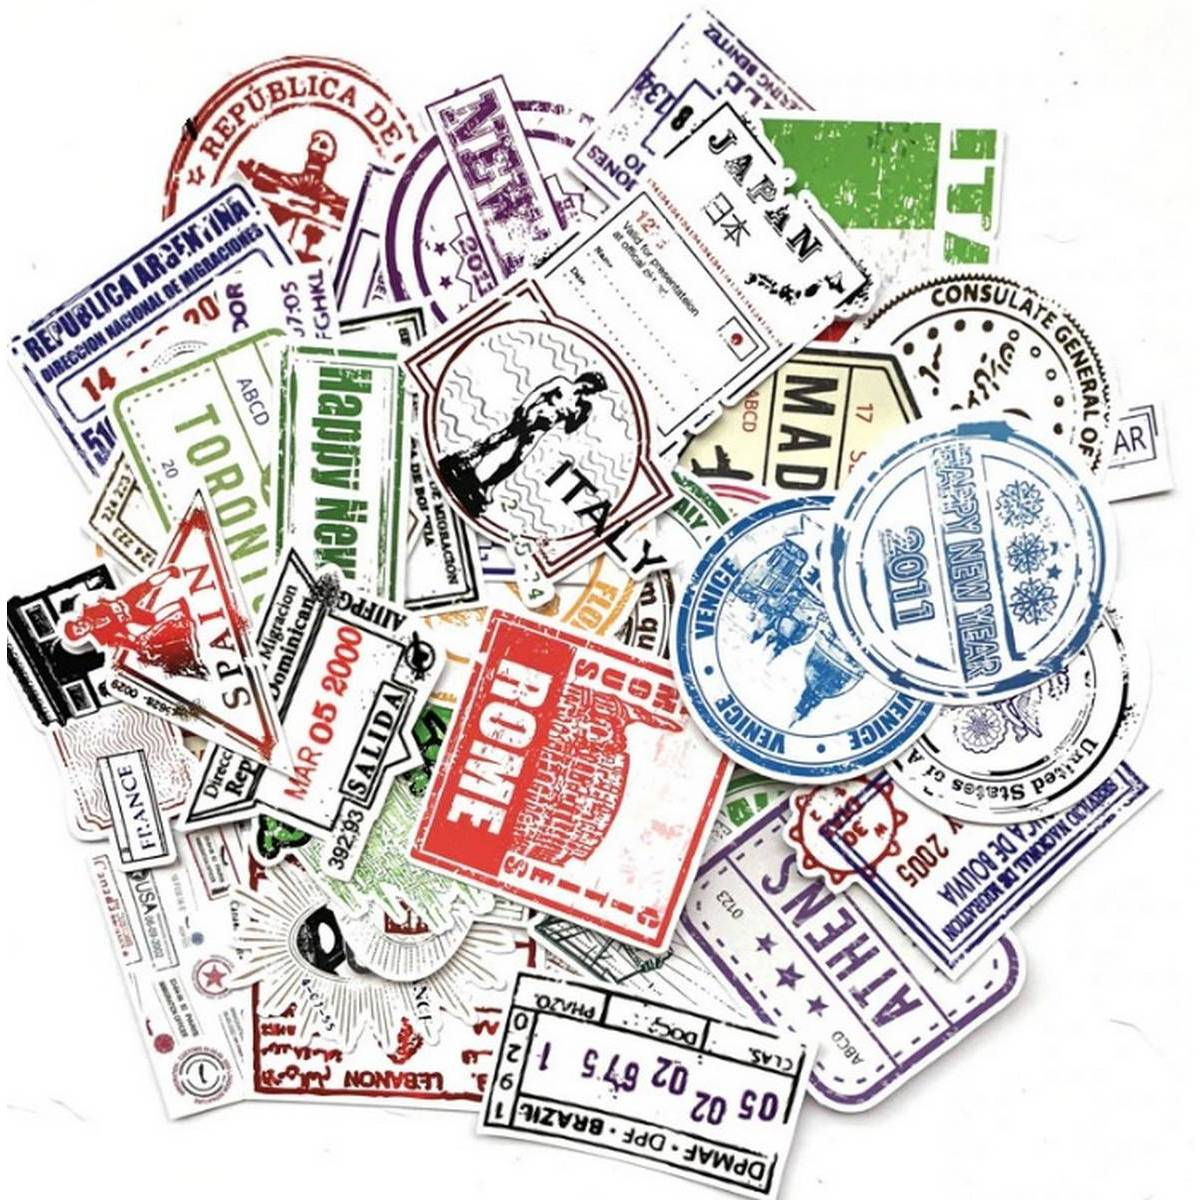 10 Pcs/Pack Retro Traveling,Boarding Pass, Air Tickets, Creative Water-Proof Stickers For Laptop,Luggage Bags,Bike,Phone,Car